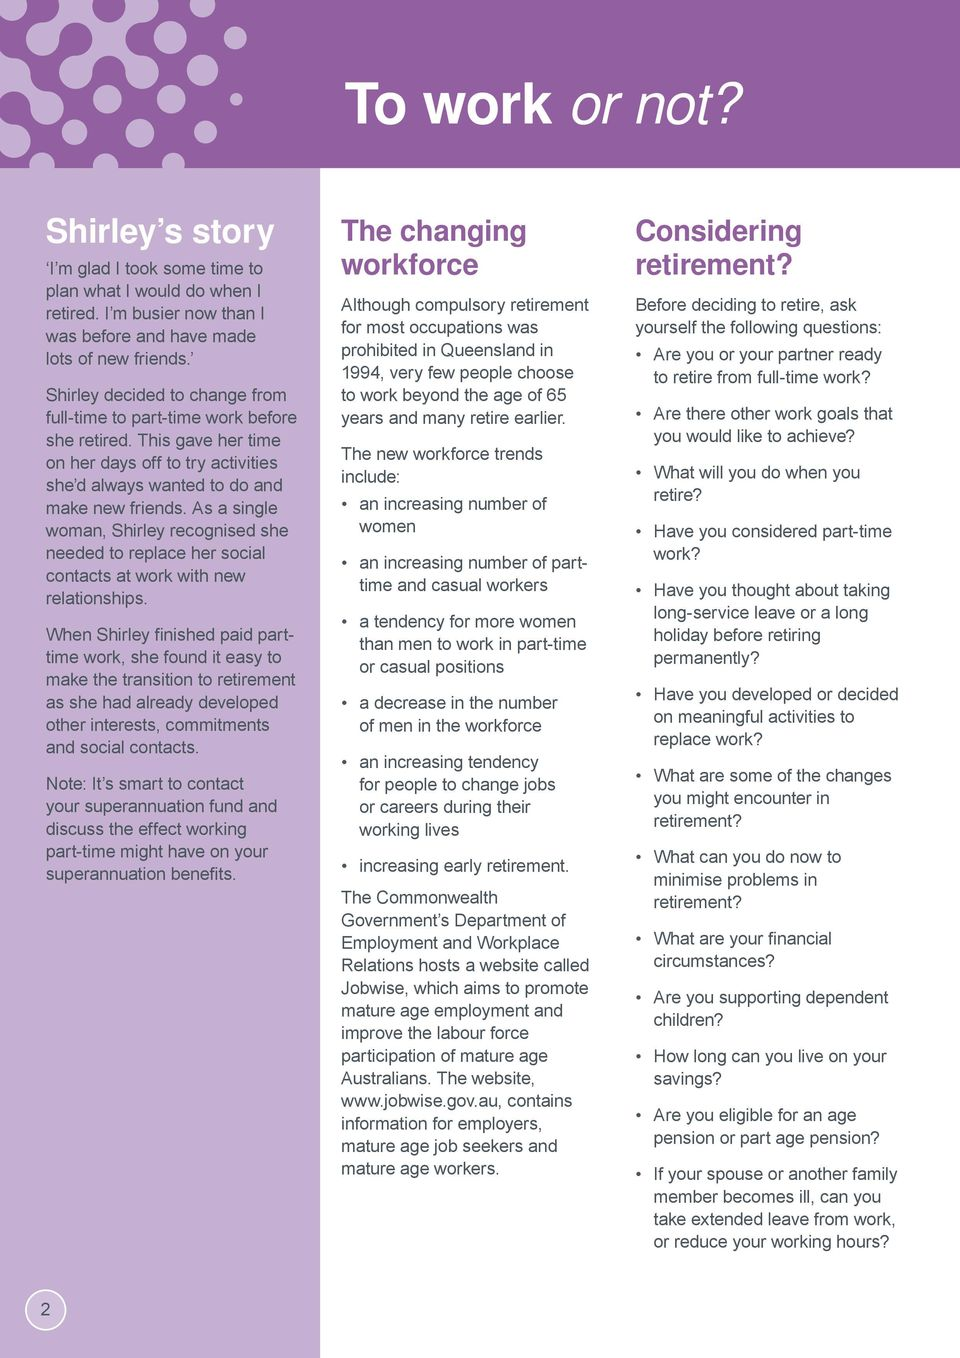 As a single woman, Shirley recognised she needed to replace her social contacts at work with new relationships.